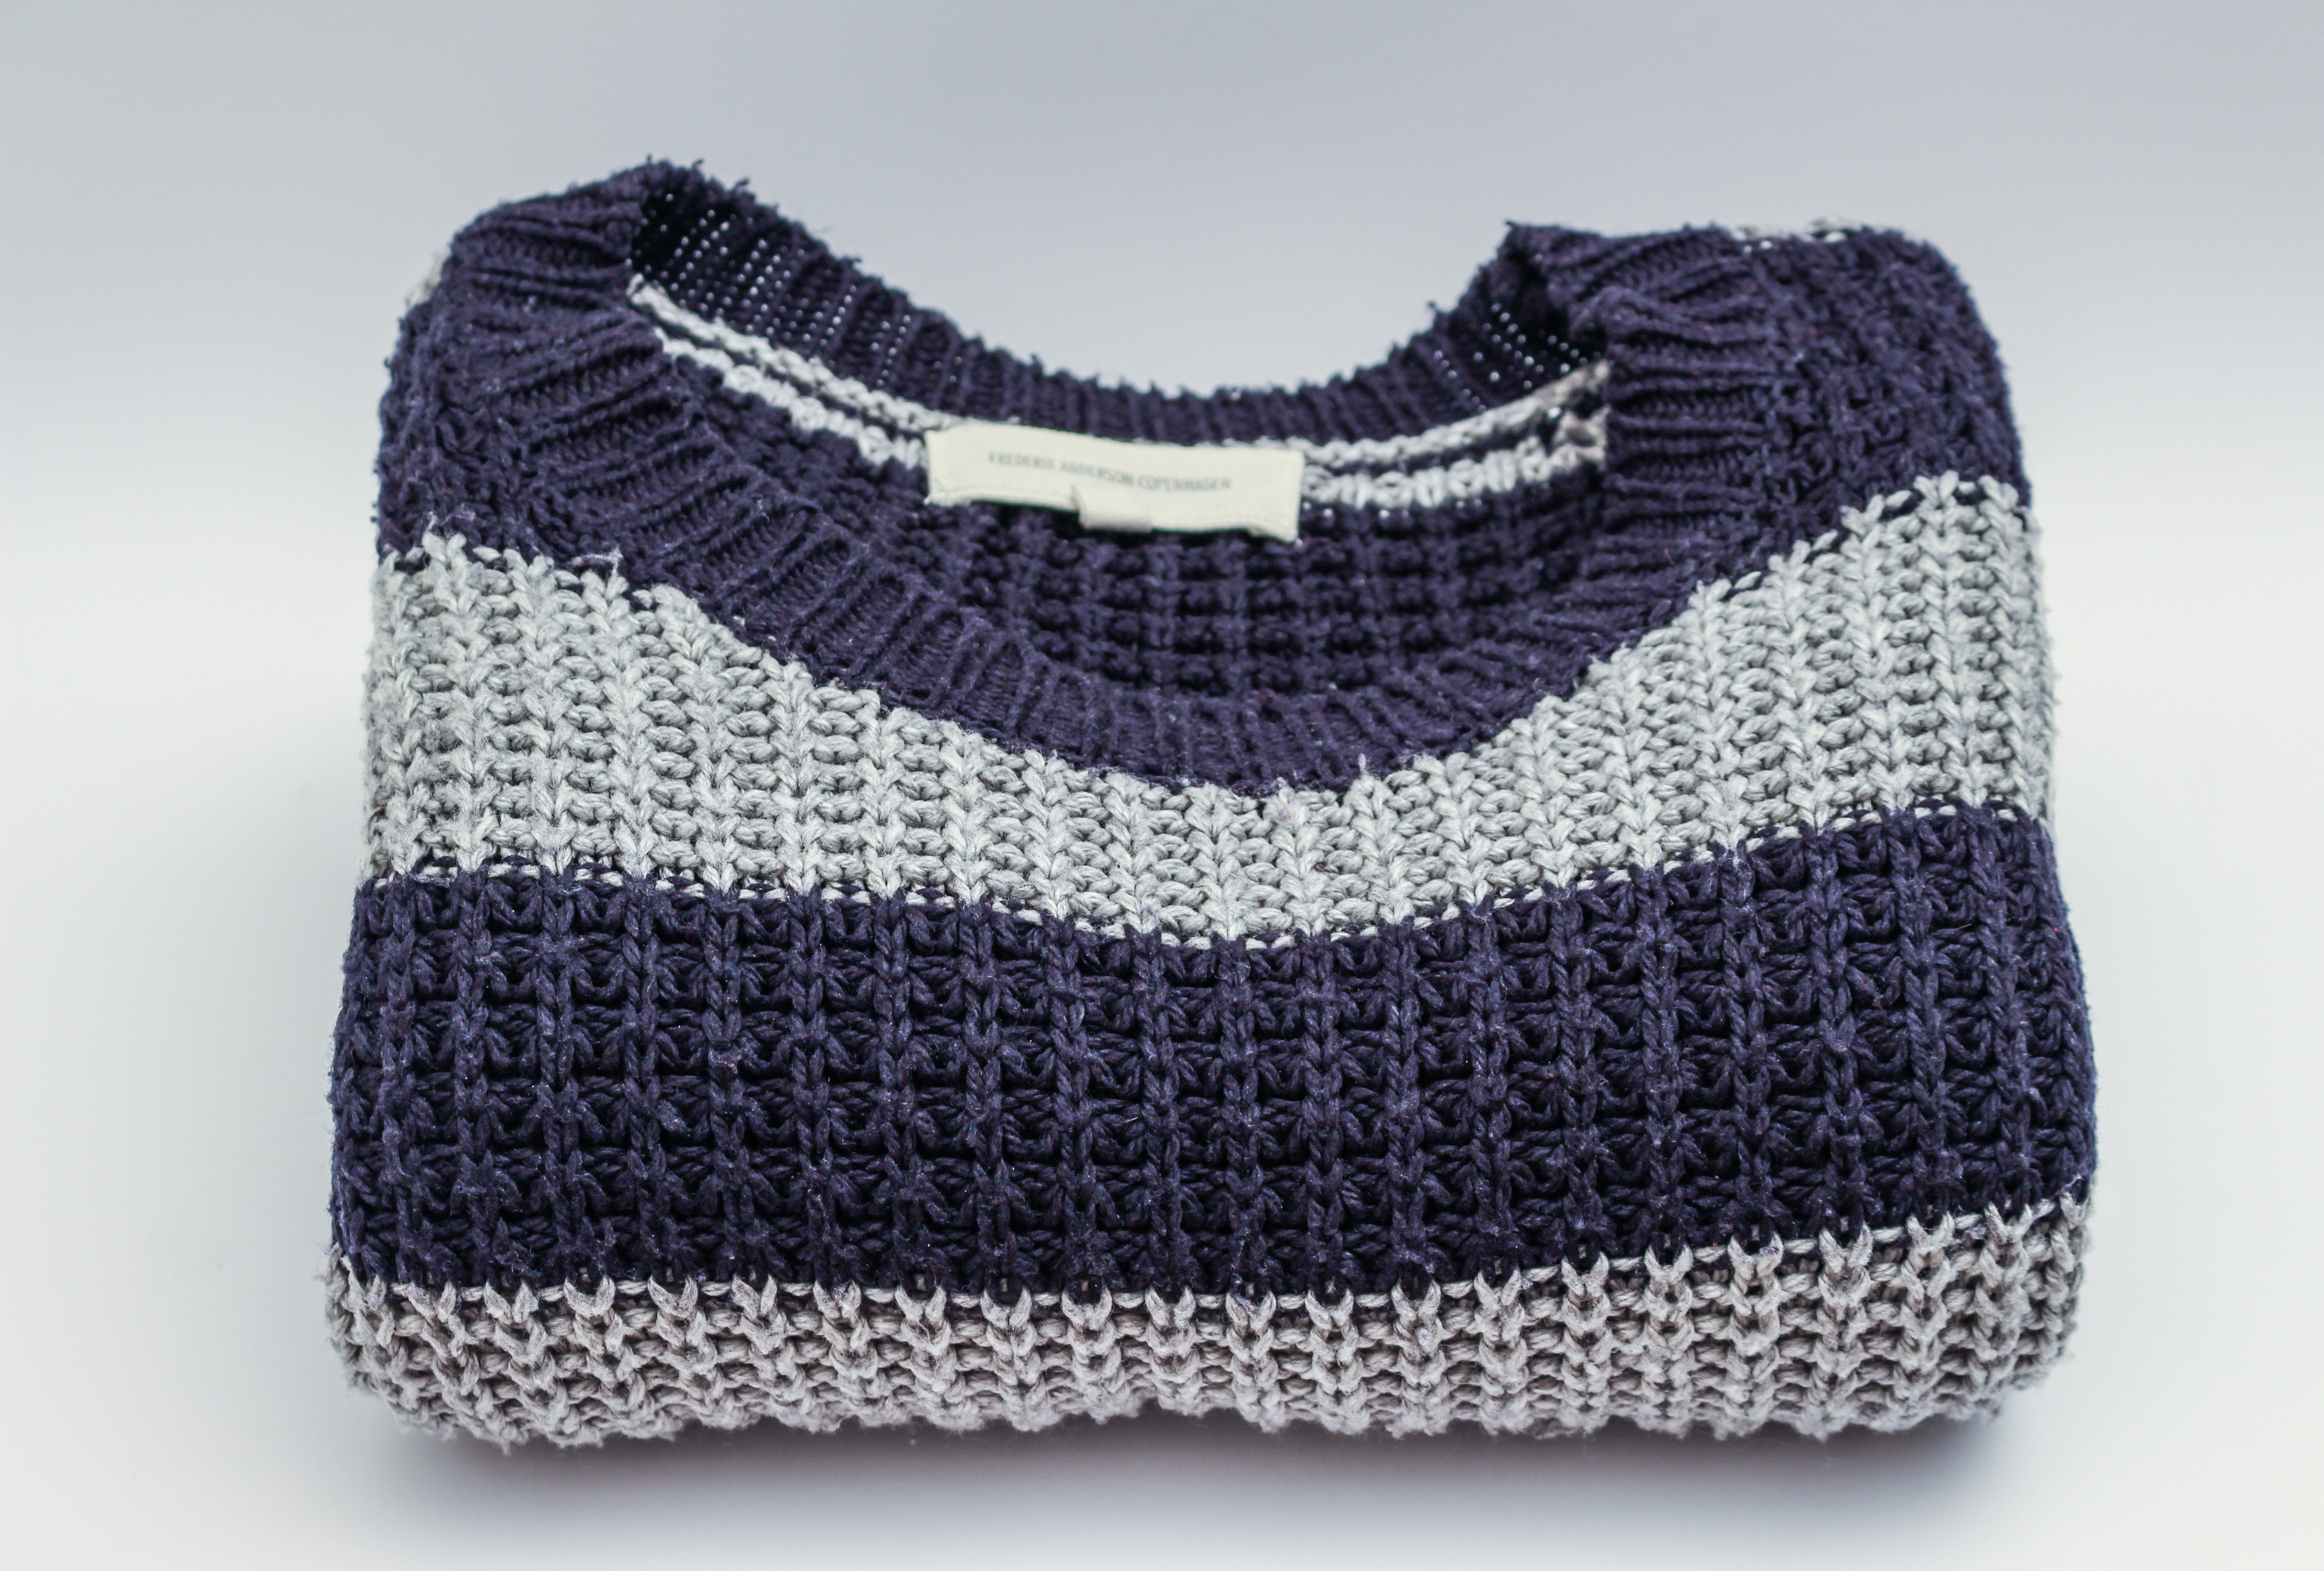 cardigan-clothes-sweater-45982